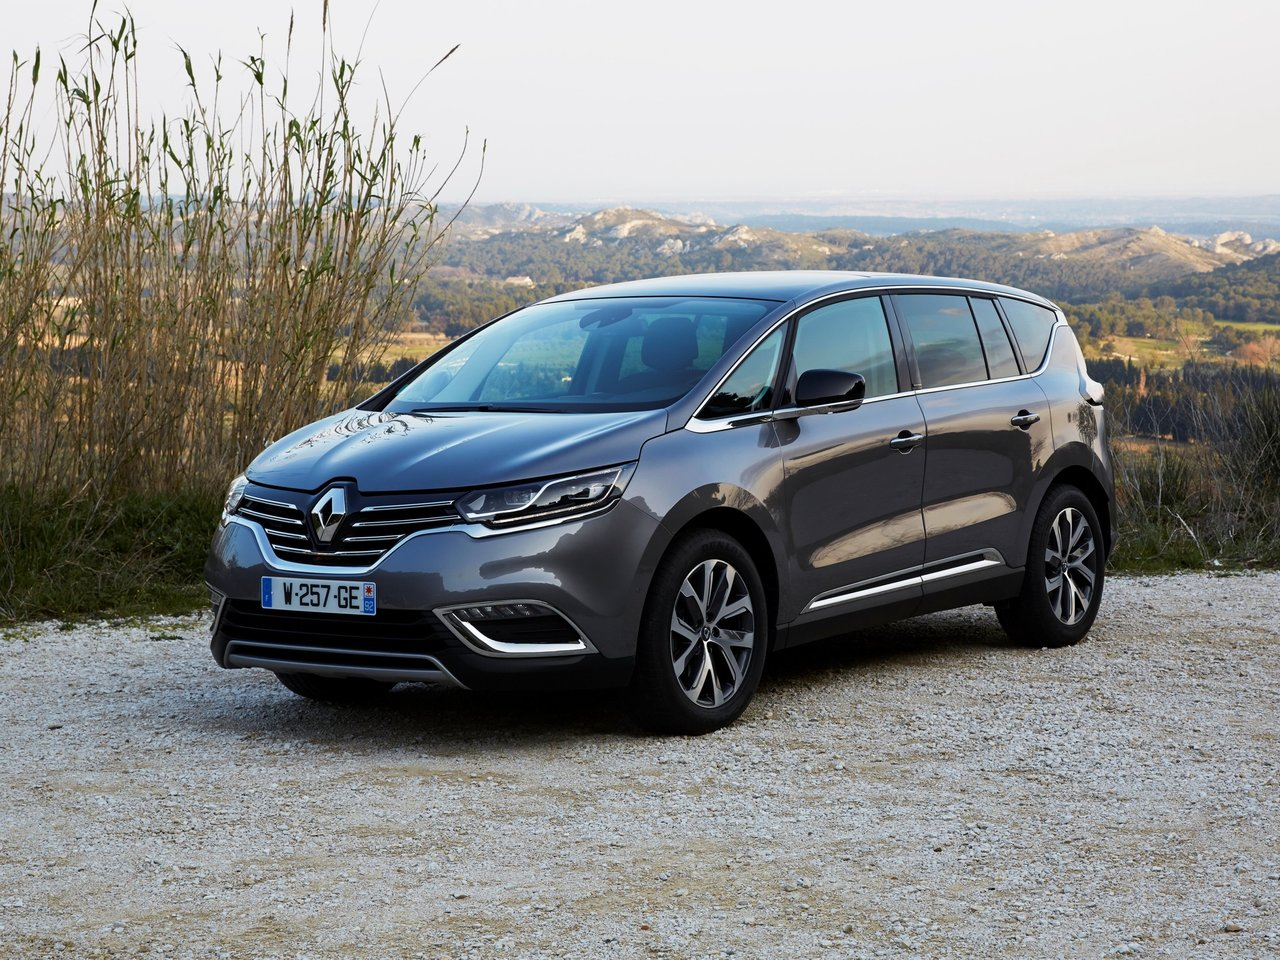 renault espace technical specifications and fuel economy. Black Bedroom Furniture Sets. Home Design Ideas